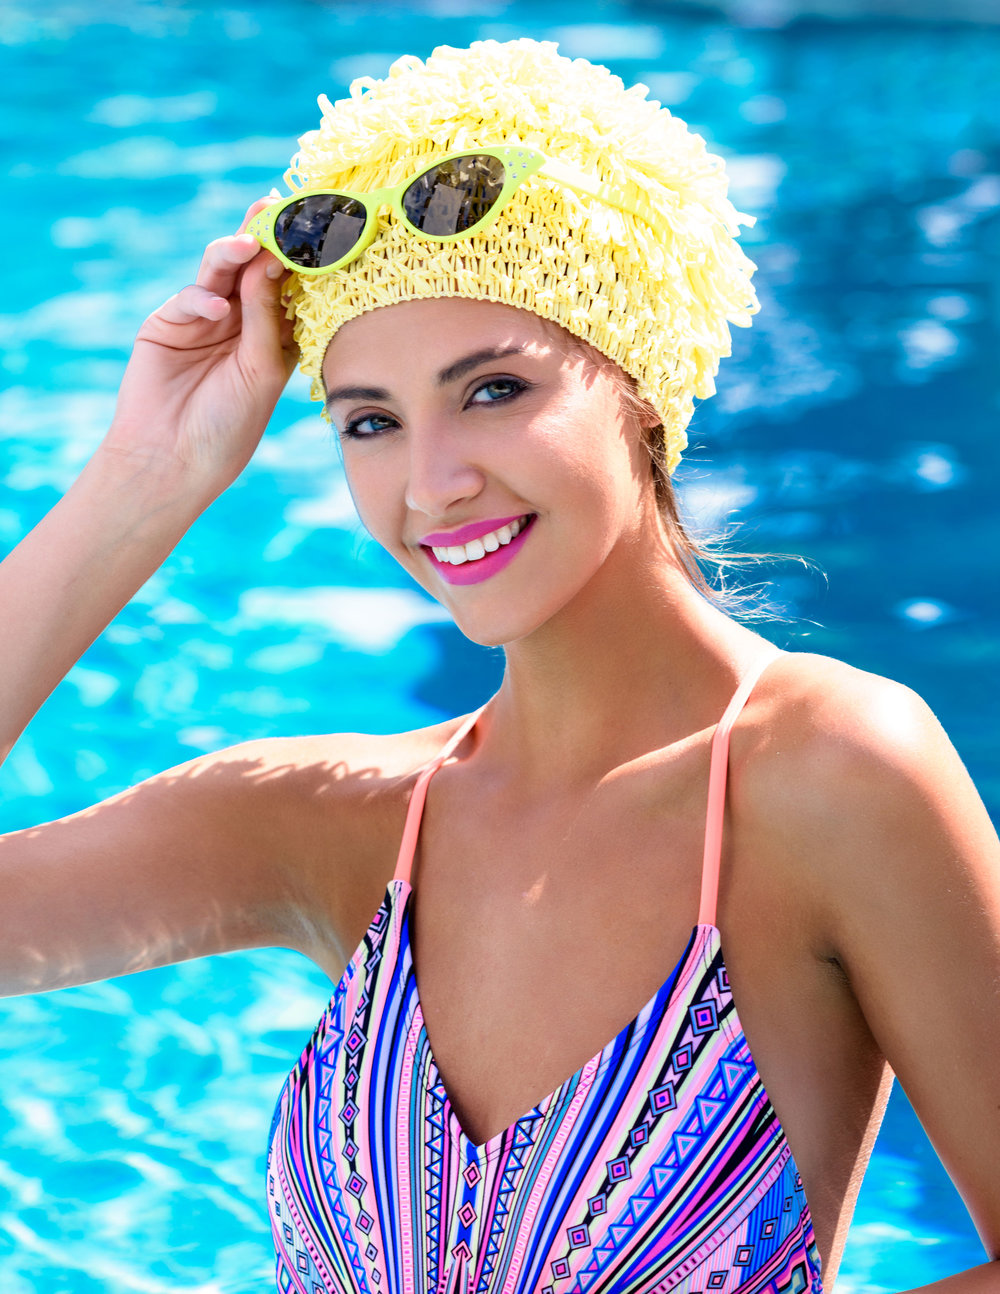 Protect your hair from sun, surf and chlorine damage with a bright, fun swim cap. A colorful pair of shades and a bright pink lip are all you need to complete the look and be truly effortlessly chic!